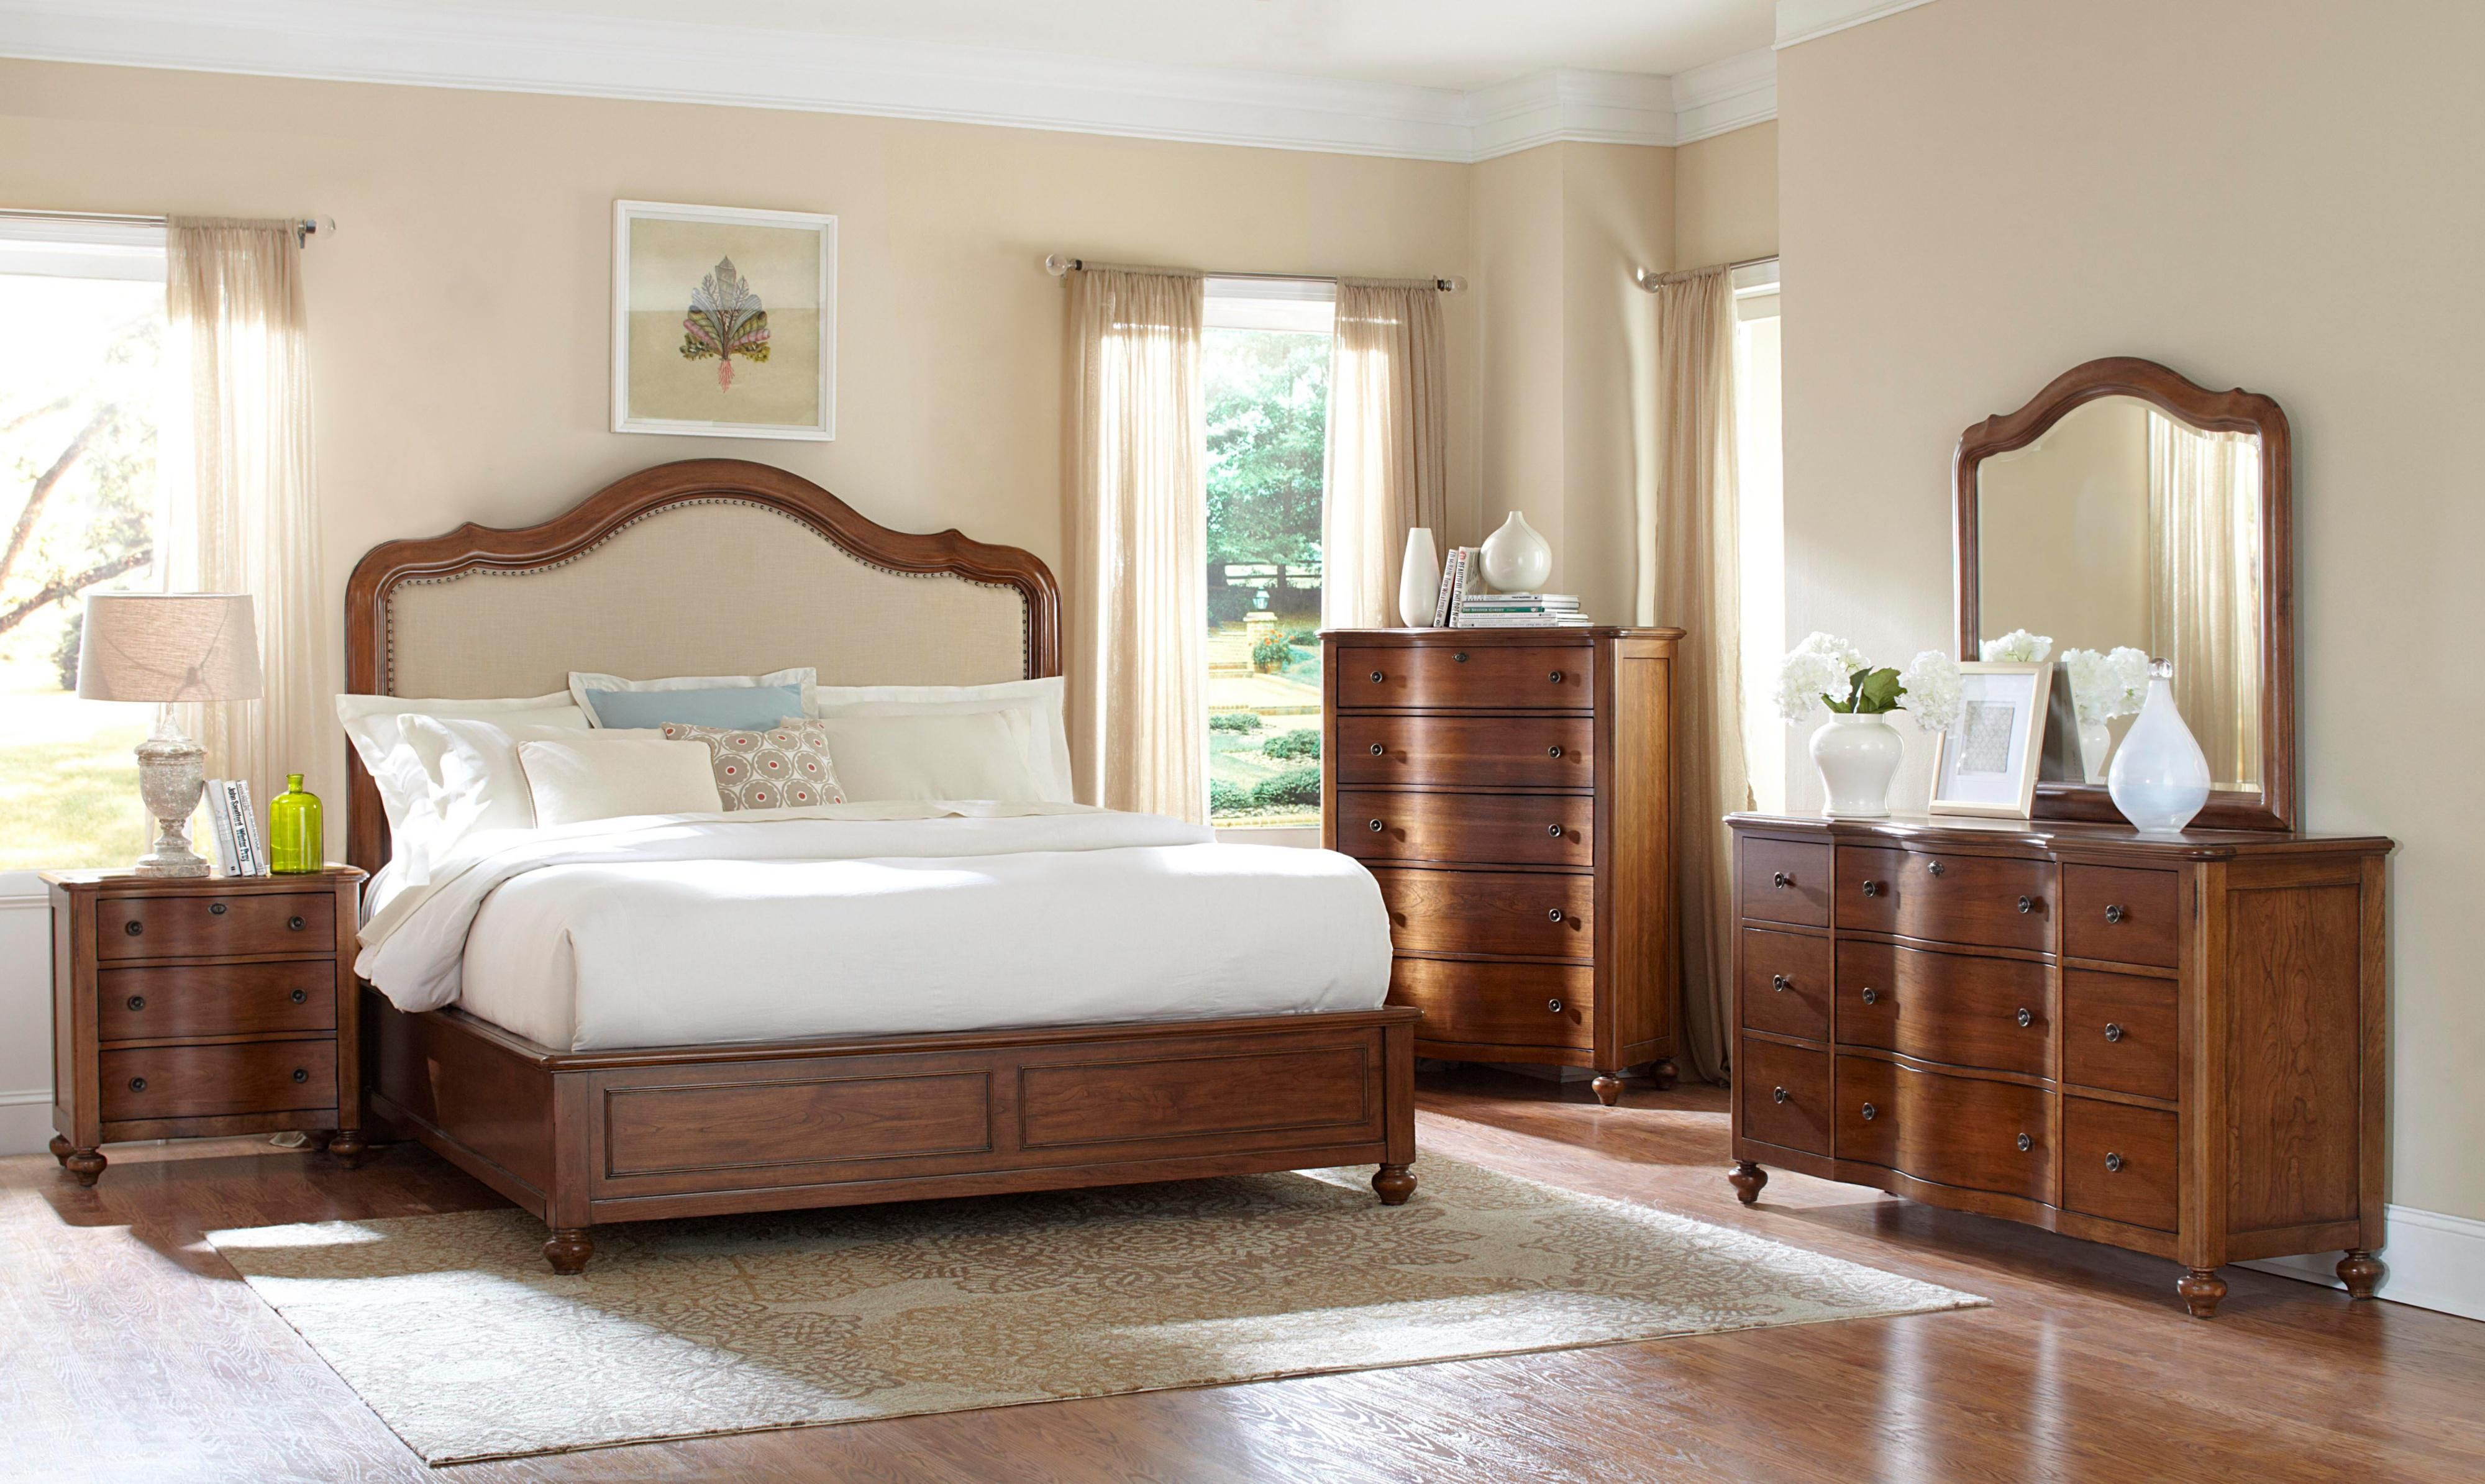 Creswell Queen Bedroom Group By Broyhill Furniture At Johnny Janosik Broyhill Furniture Upholstered Bedroom Set Furniture